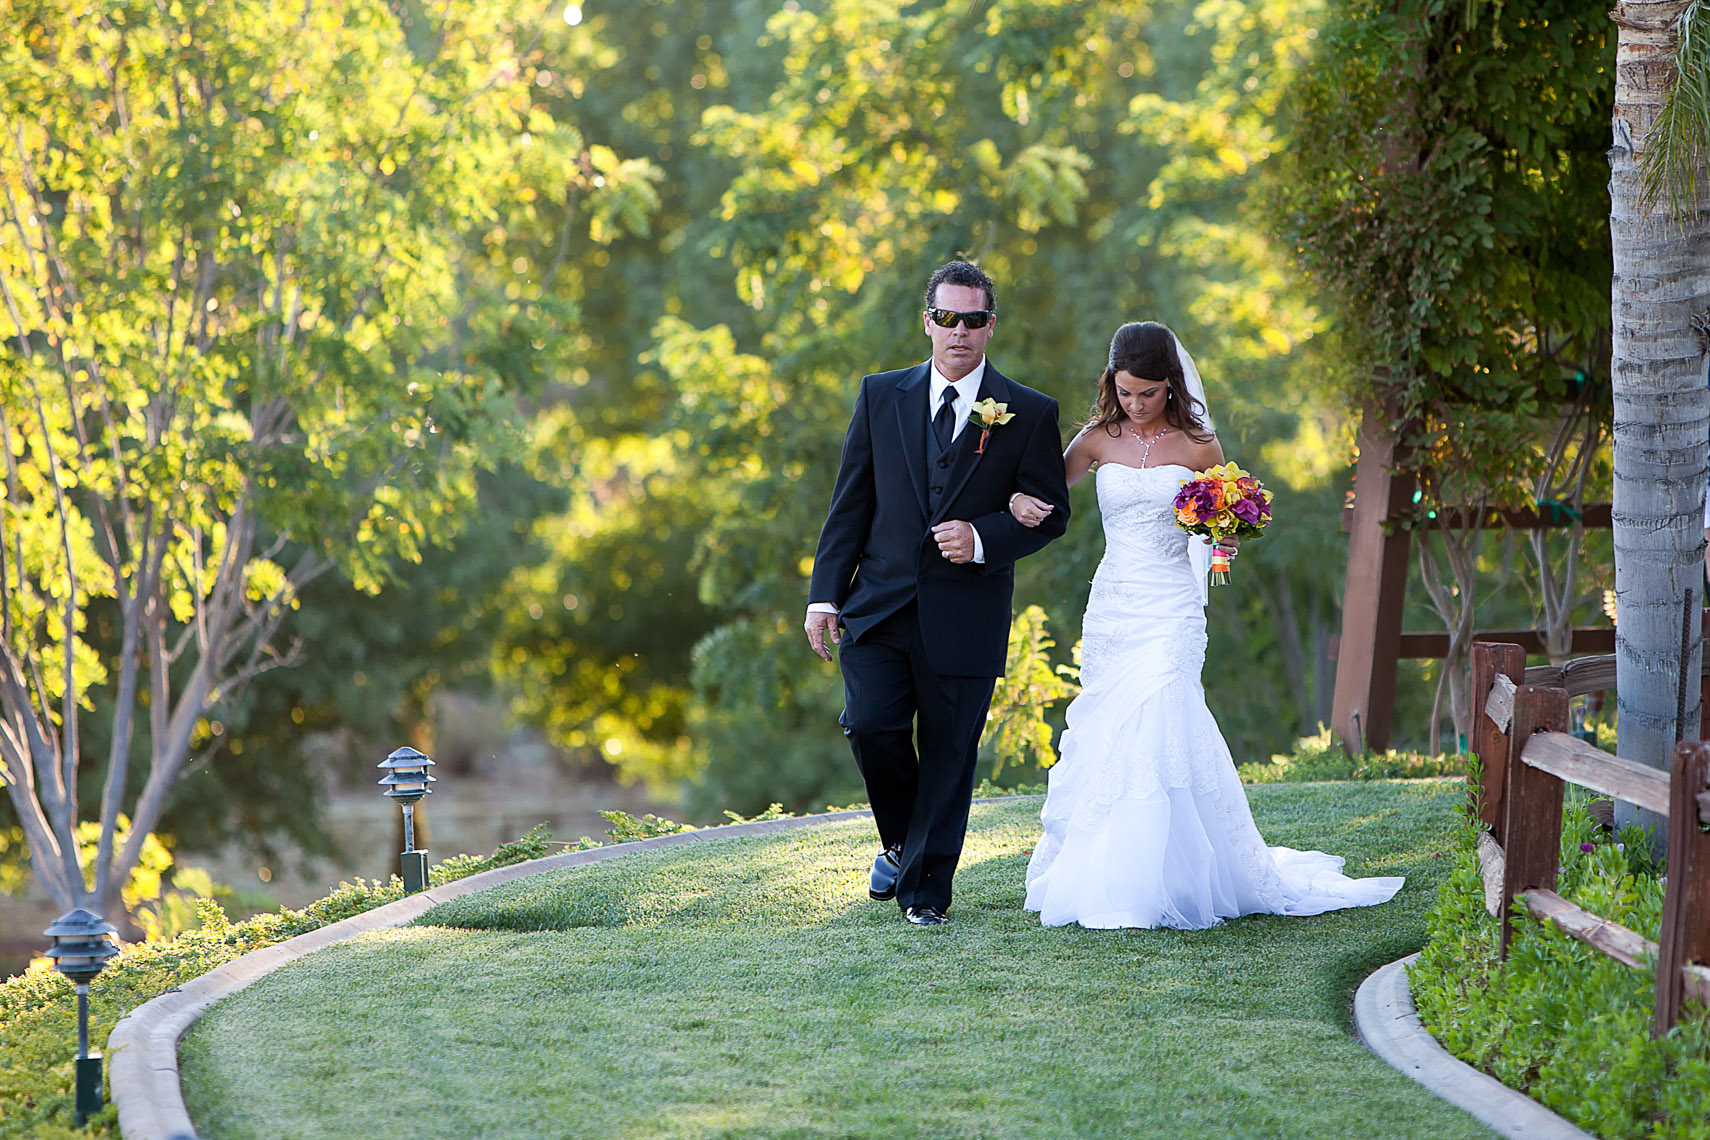 Temecula Ranch Wedding - Temecula